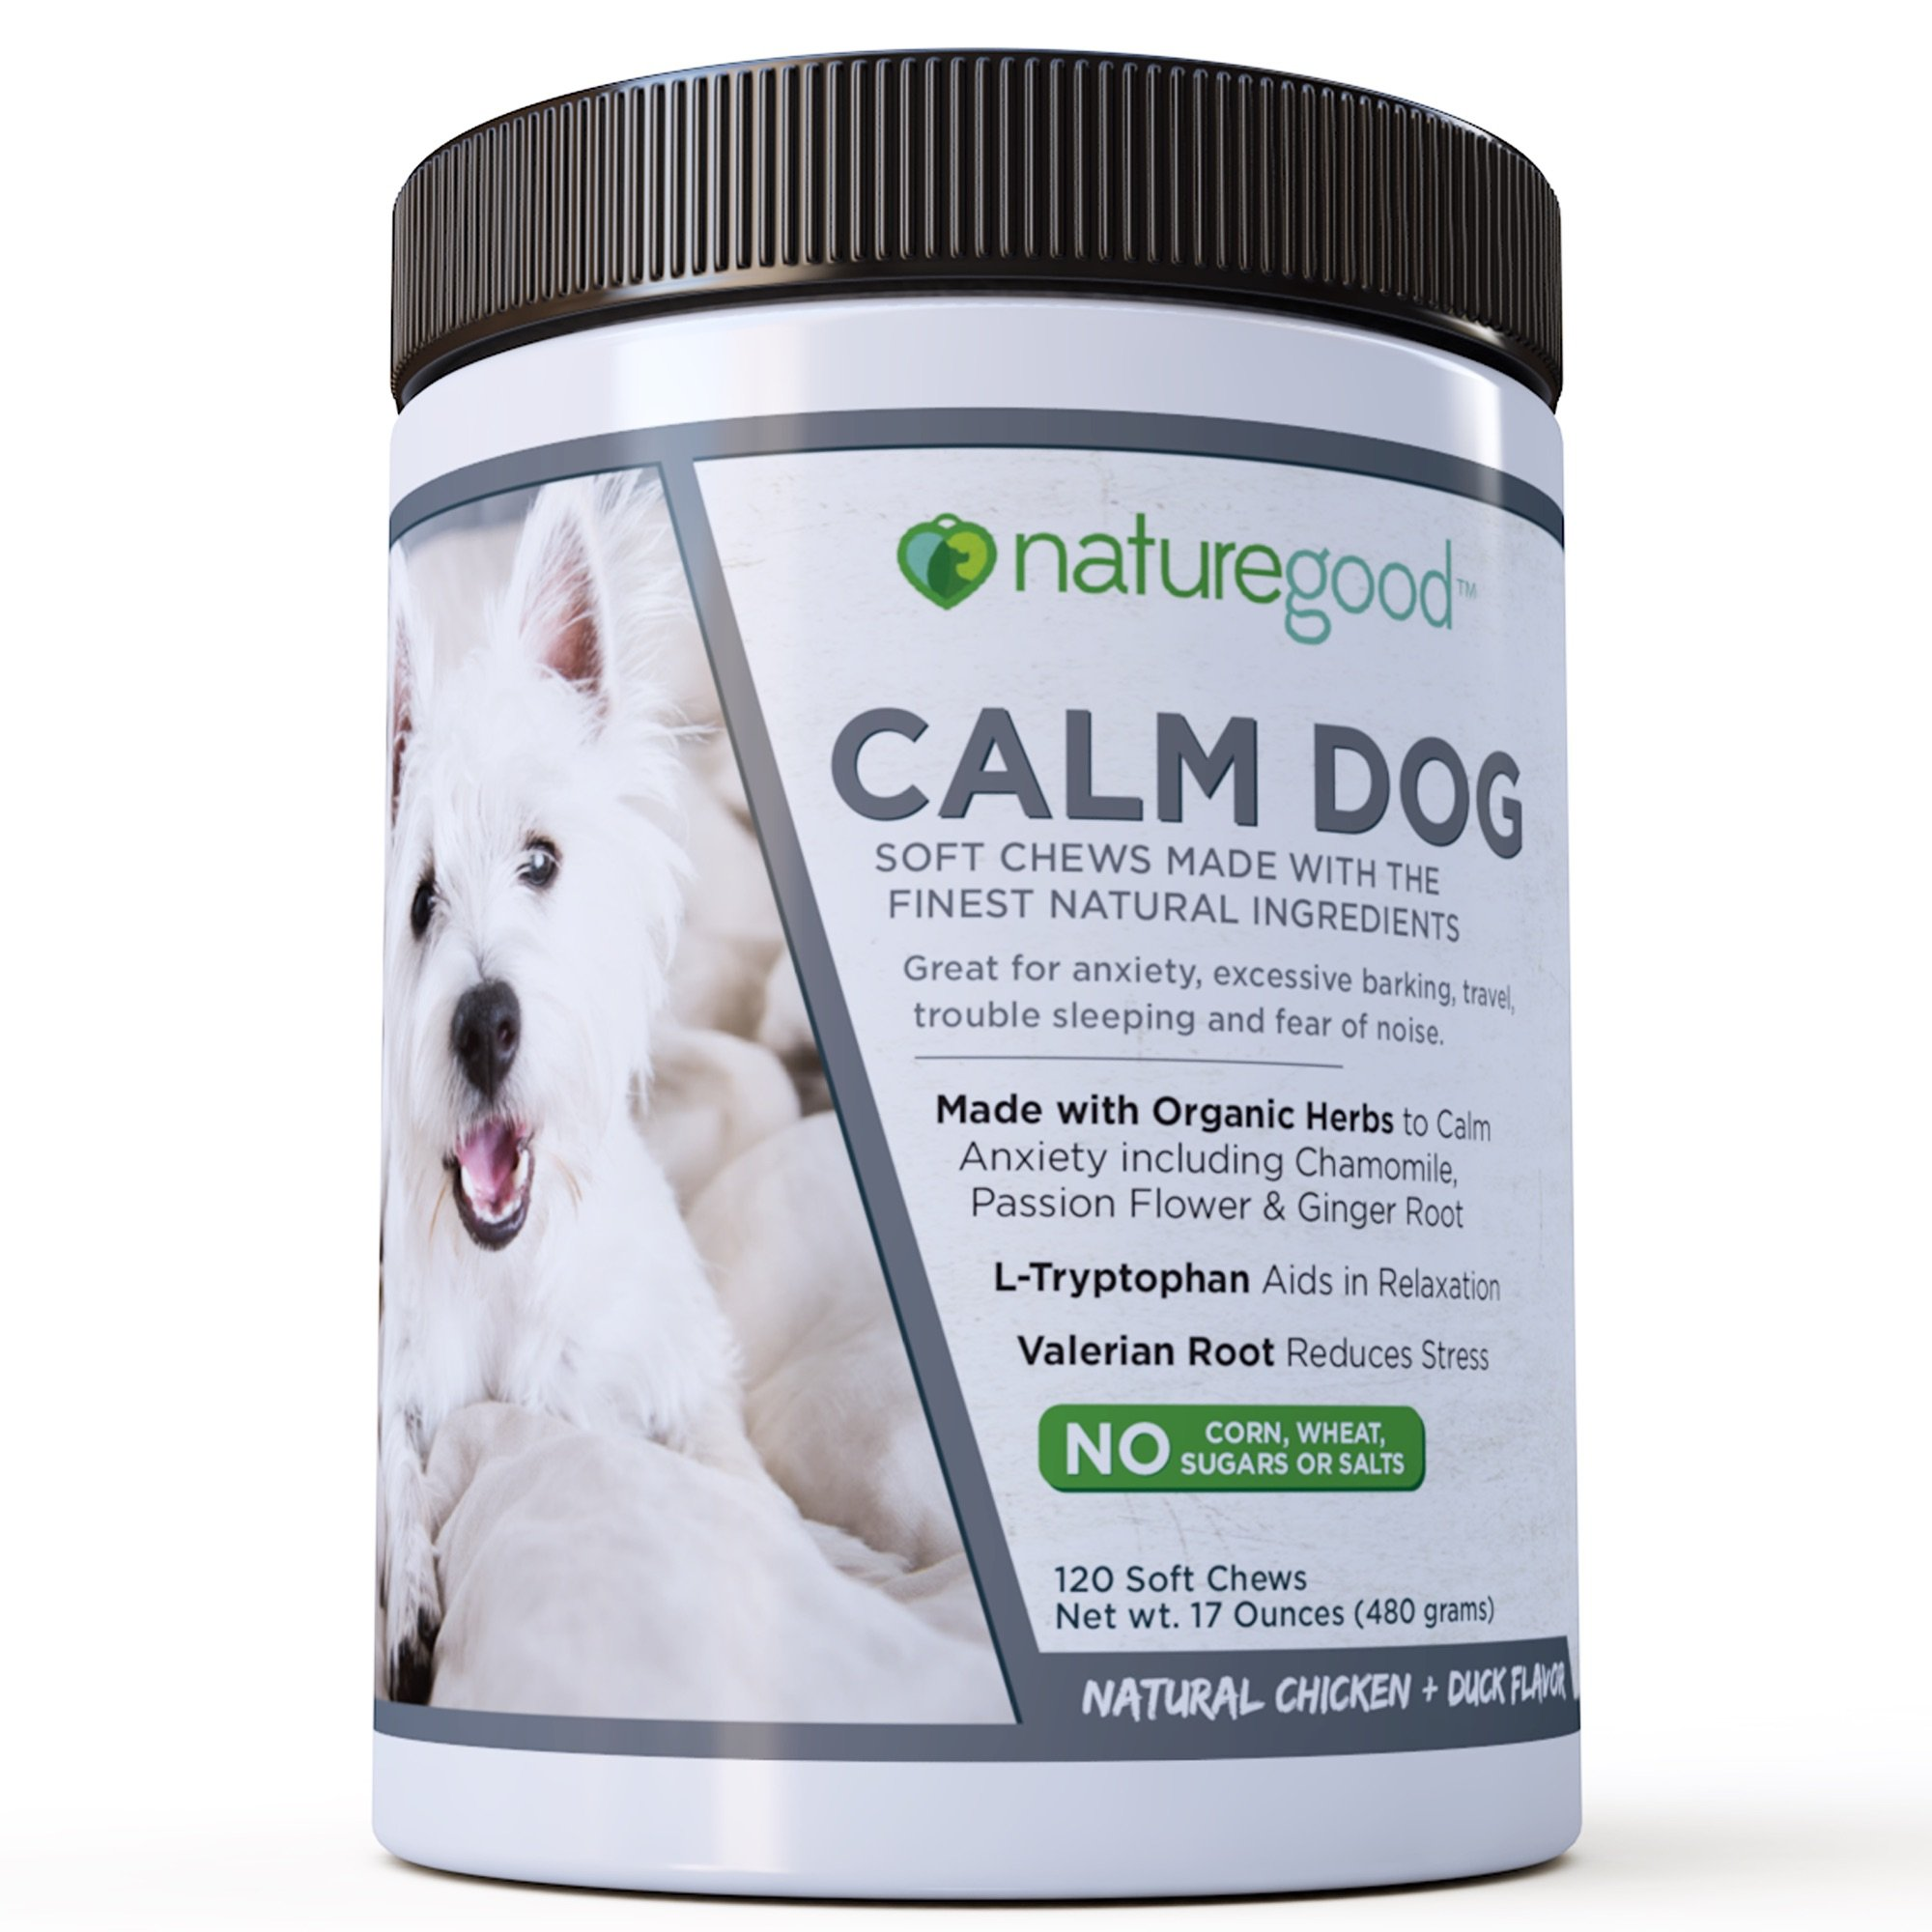 Premium Anxiety Calming + Stress Relief for Dogs | Organic Herbs | Valerian Root + L Tryptophan | 4 Gram Soft Chews | Natural Chicken + Duck Flavor | 120 Count | Made in USA